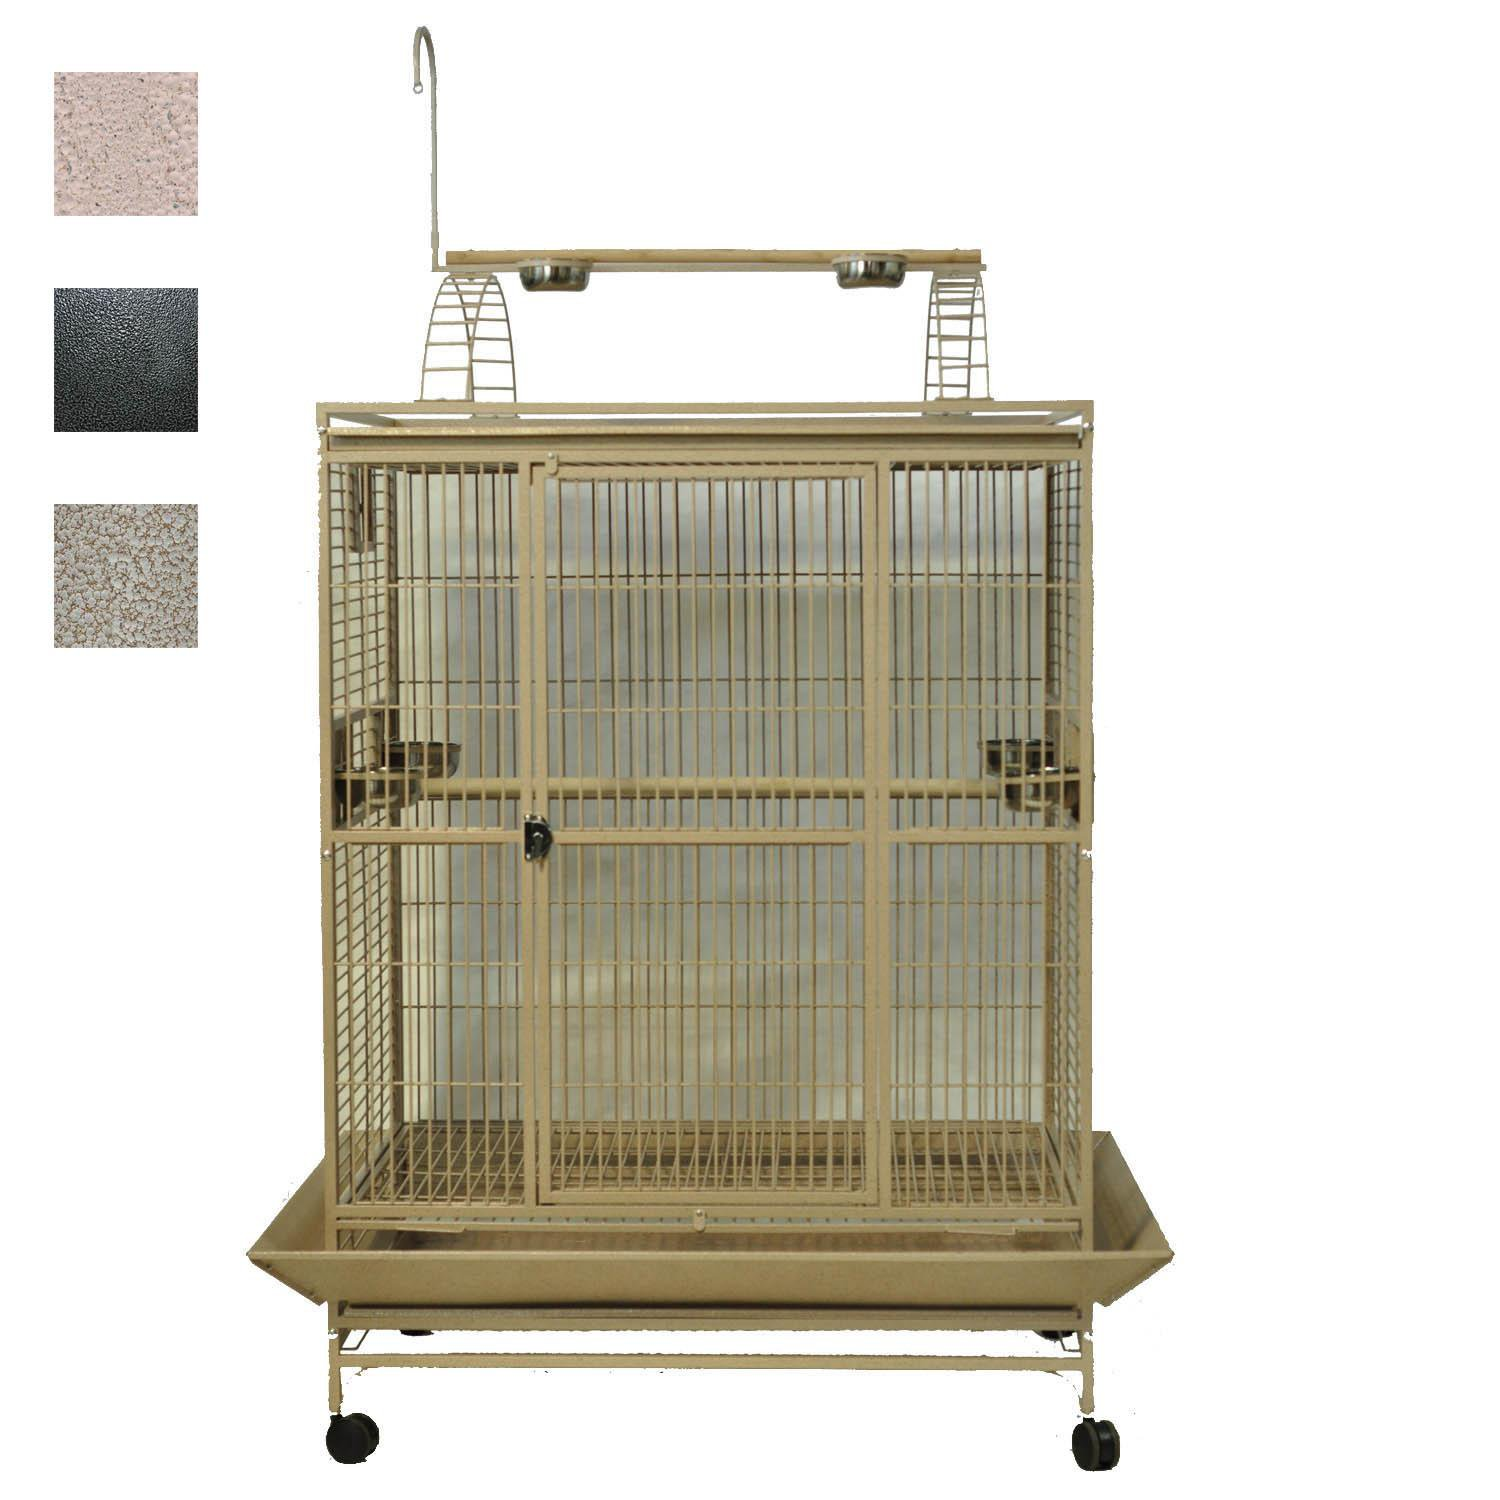 AE Cage Company 48 X 36 Play Top Bird Cage in Stainless Steel Silver